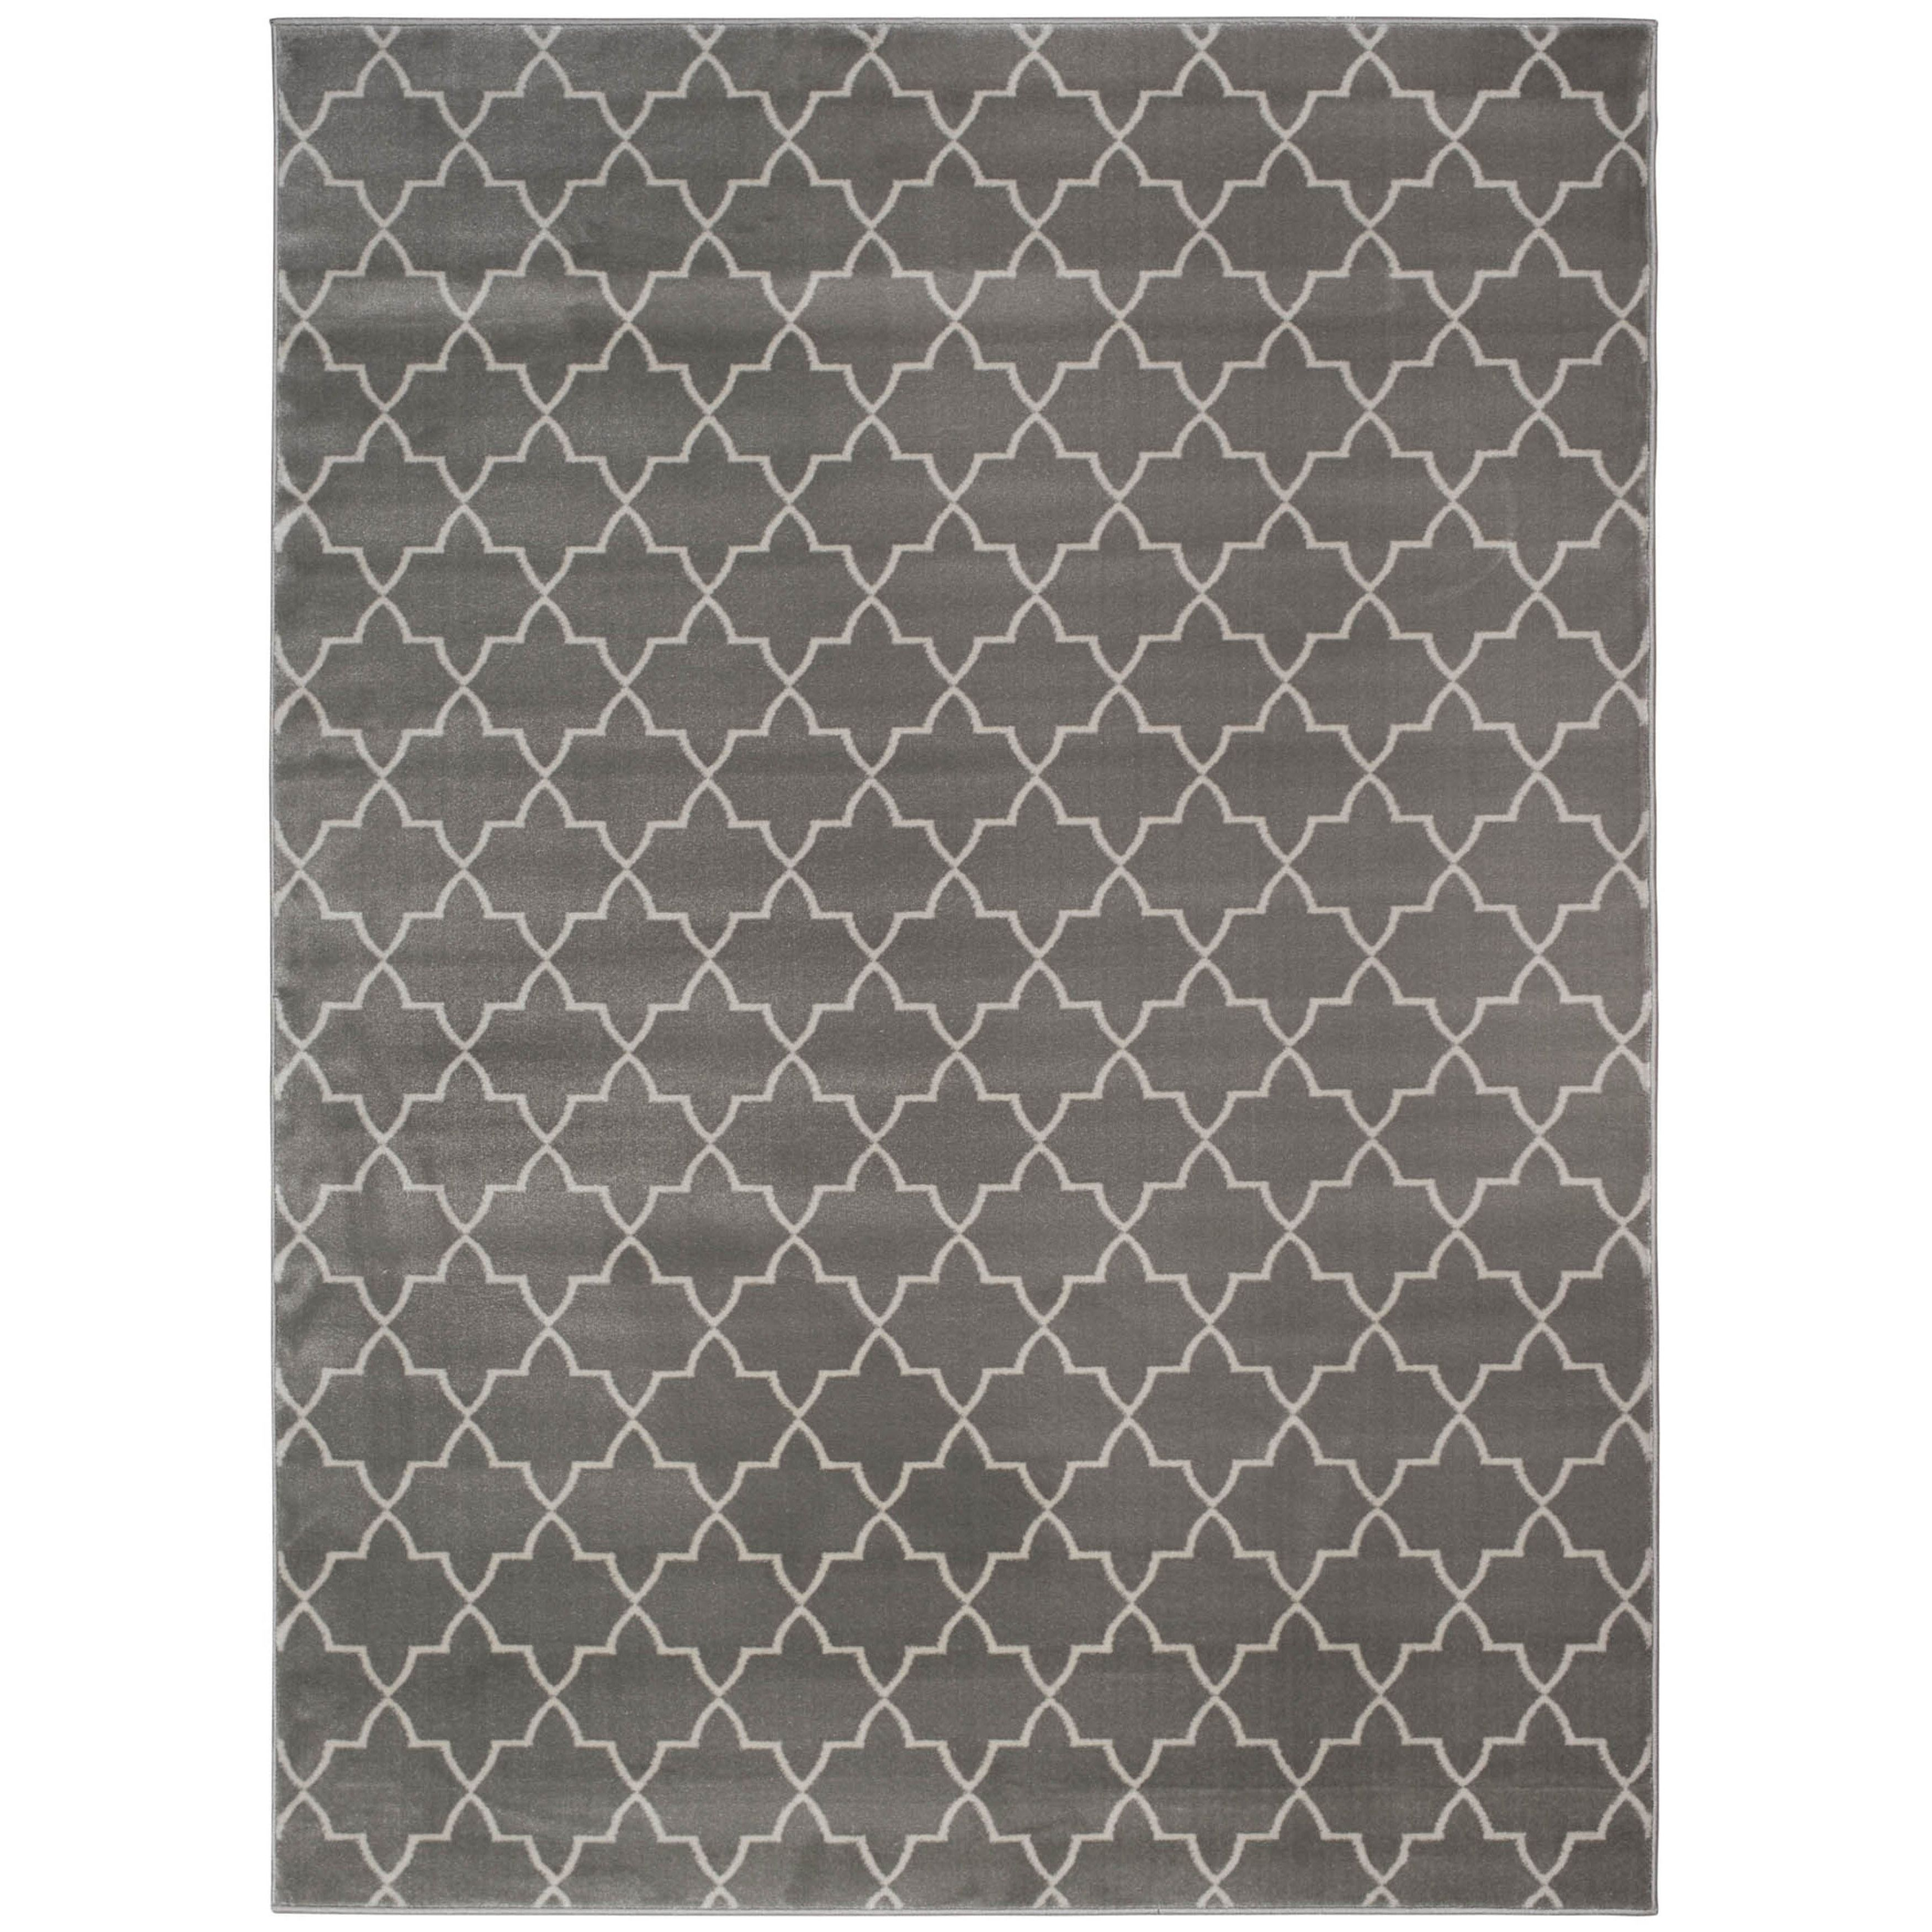 Admire Home Living Plaza Links Area rug -